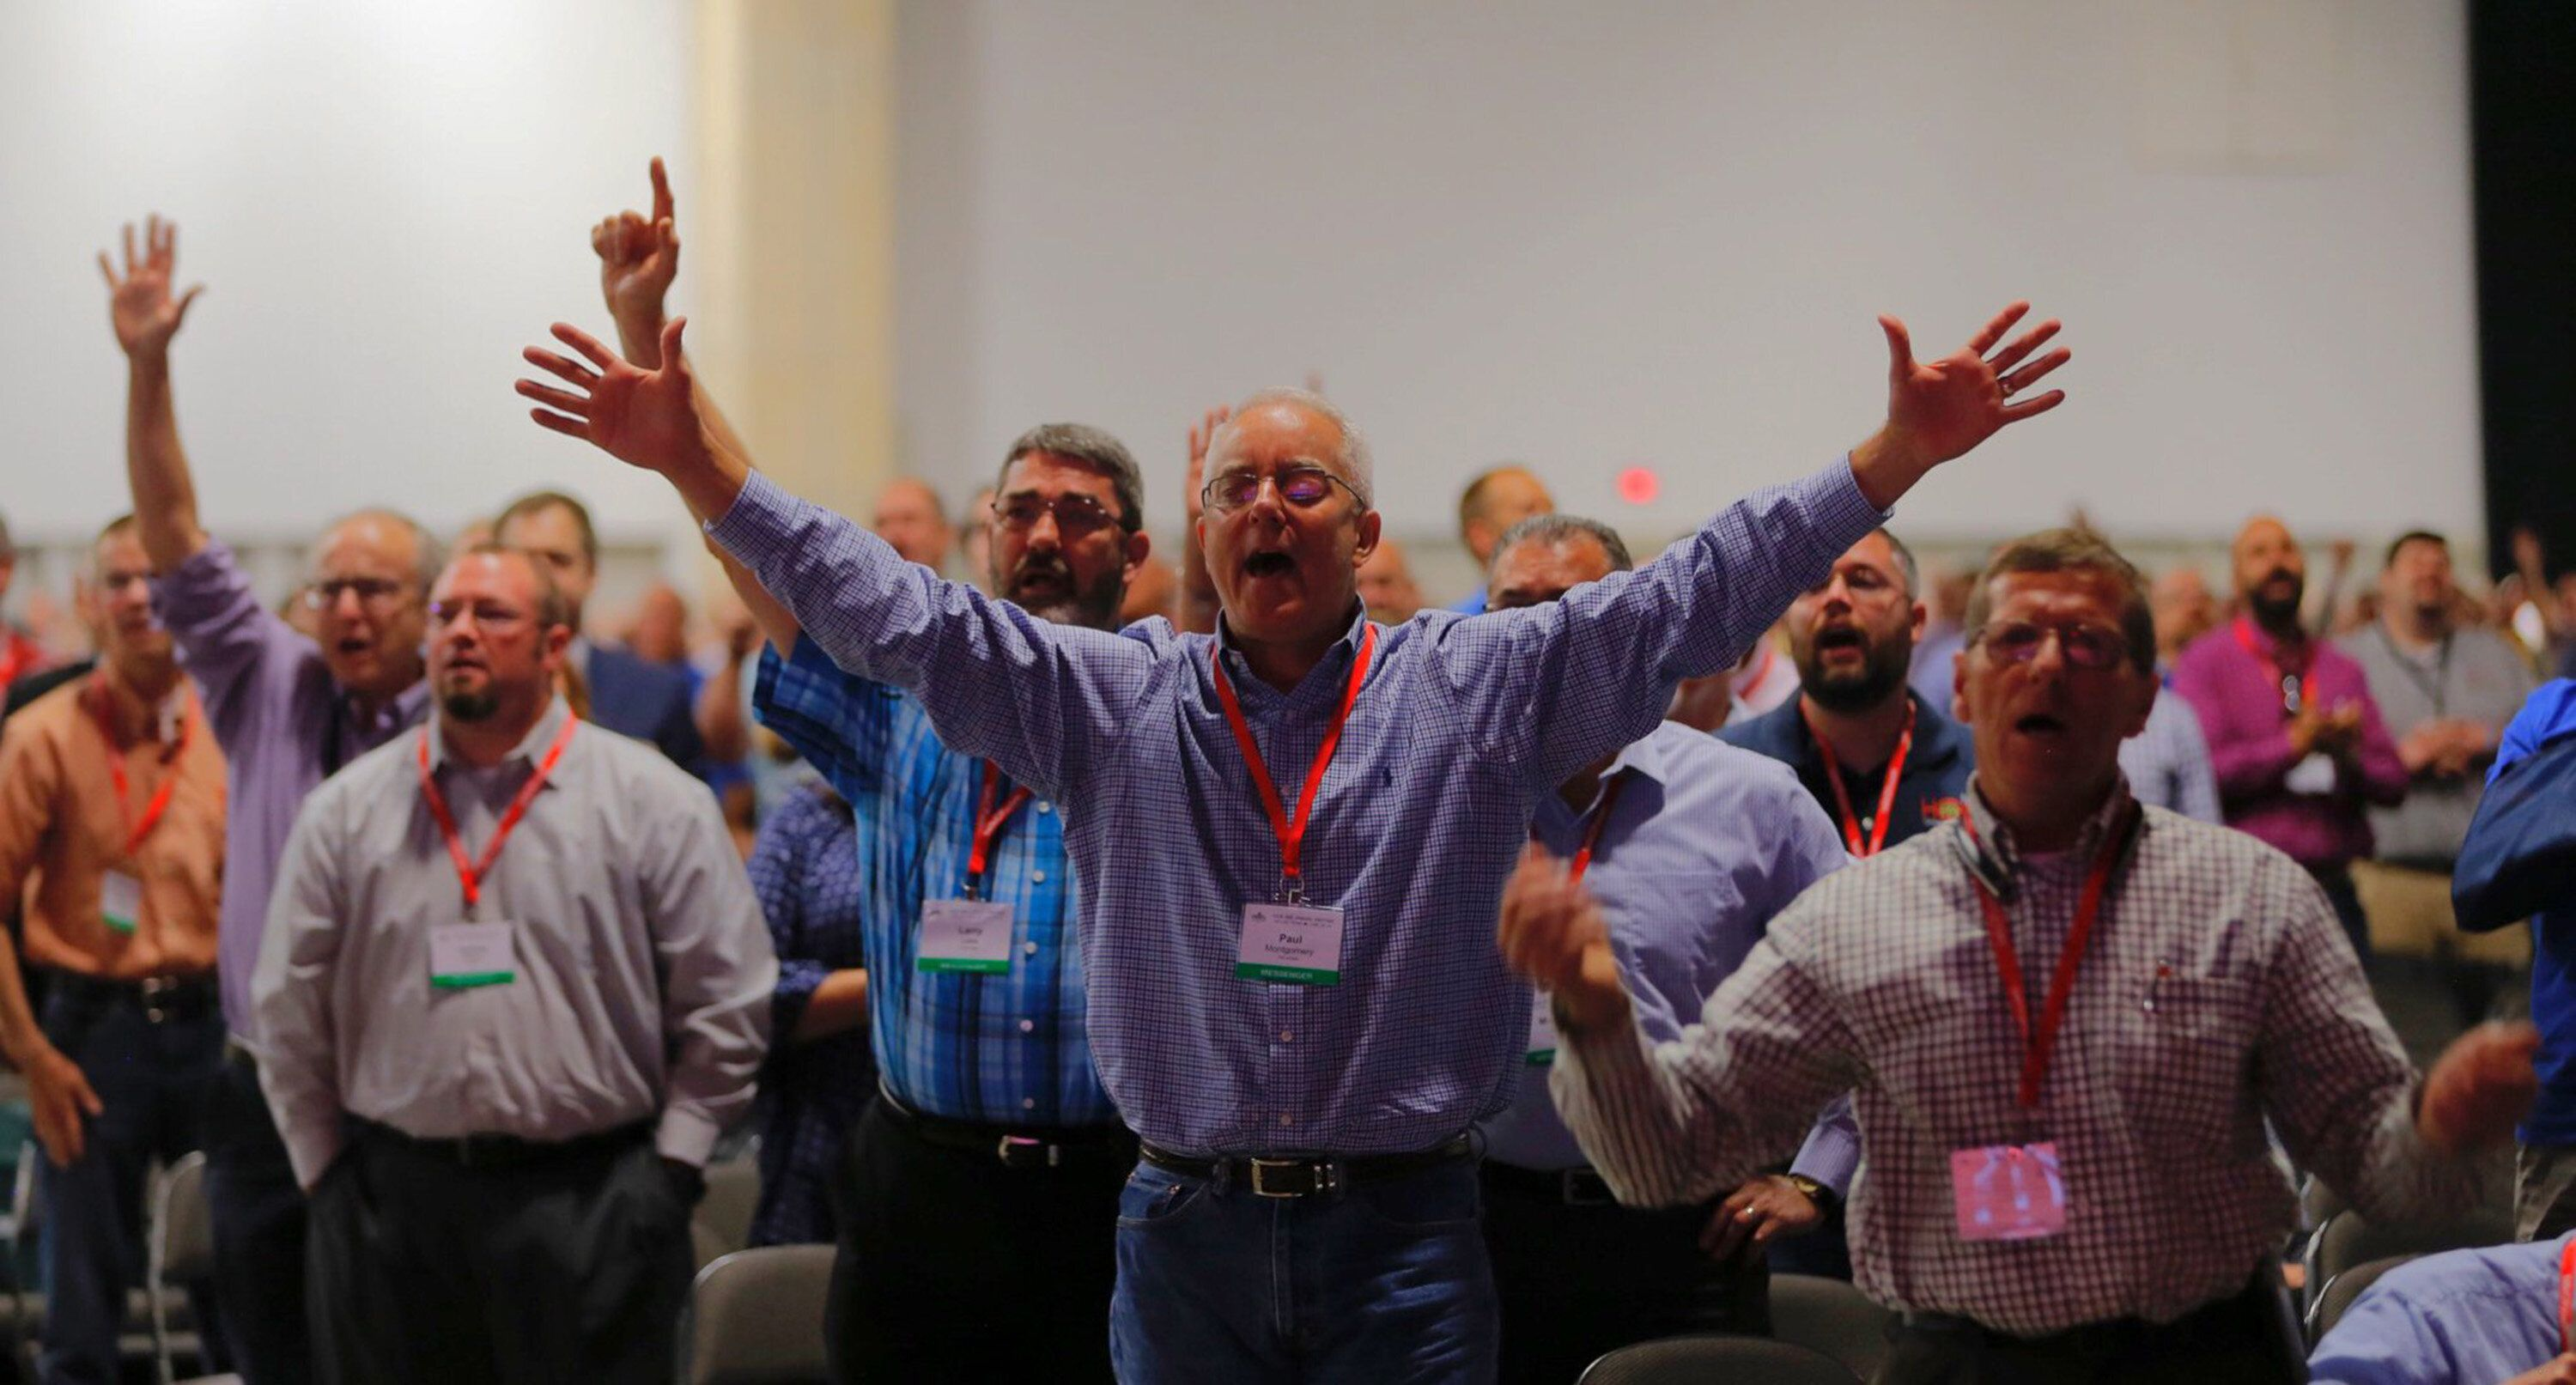 Messengers worship God, singing after a sermon by the Rev. Steve Gaines, the current president, on Tuesday, June 12, 2018 at the 2018 annual meeting of the Southern Baptist Convention in Dallas, Texas. (Rodger Mallison/Fort Worth Star-Telegram/TNS via Getty Images)